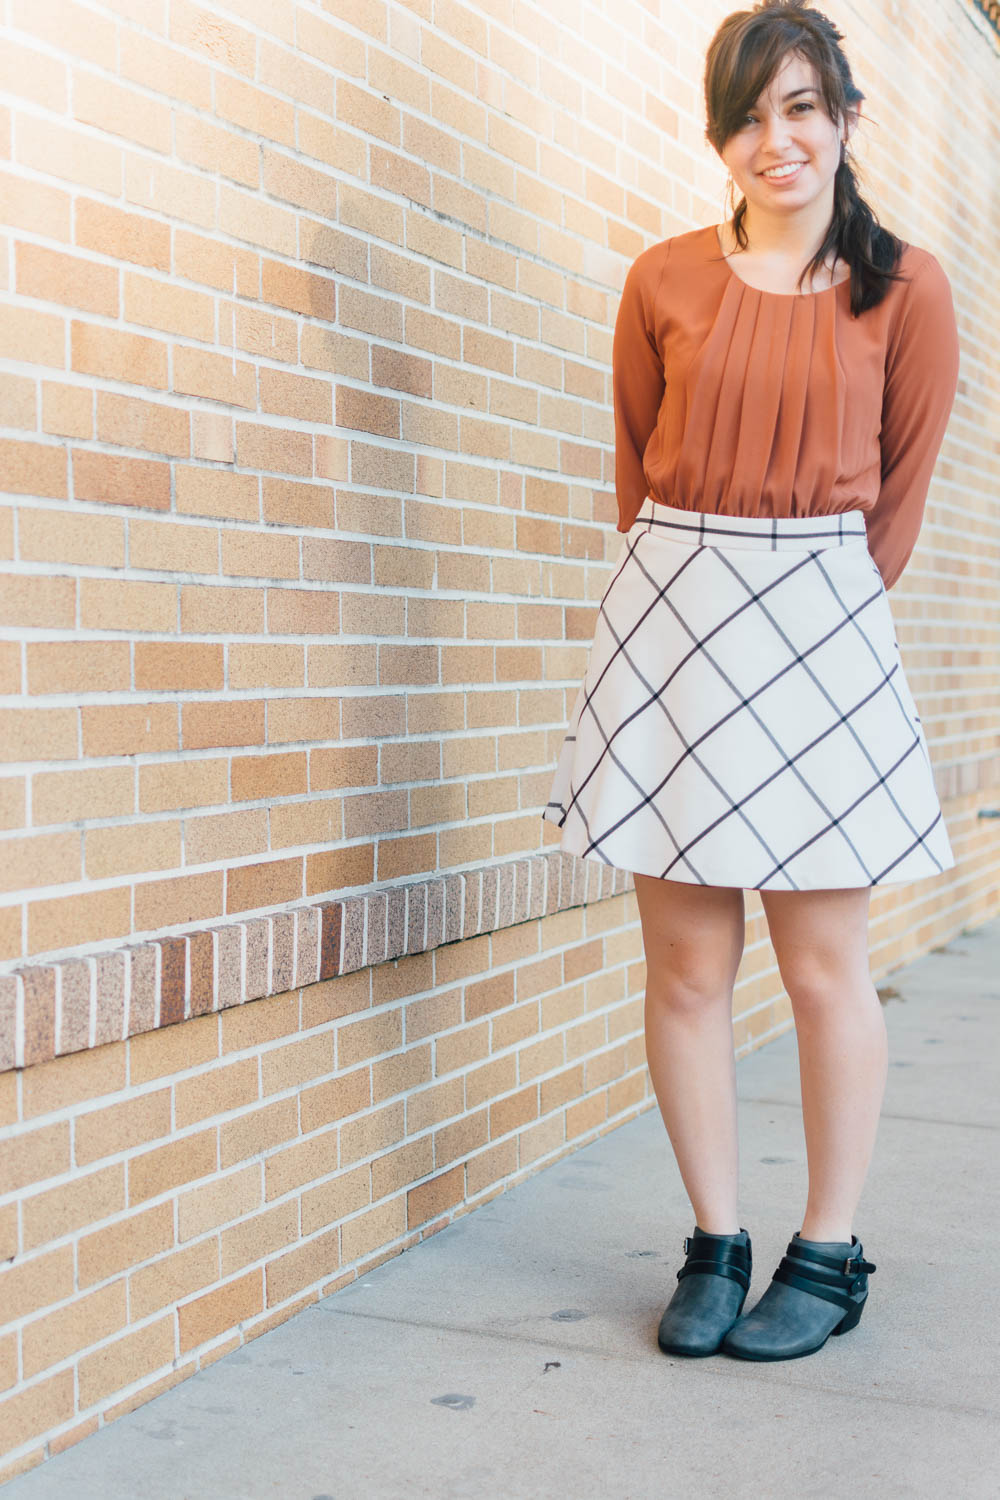 Kaity from Lovely Friend Blog: Burnt orange top, windowpane skirt, grey ankle boots